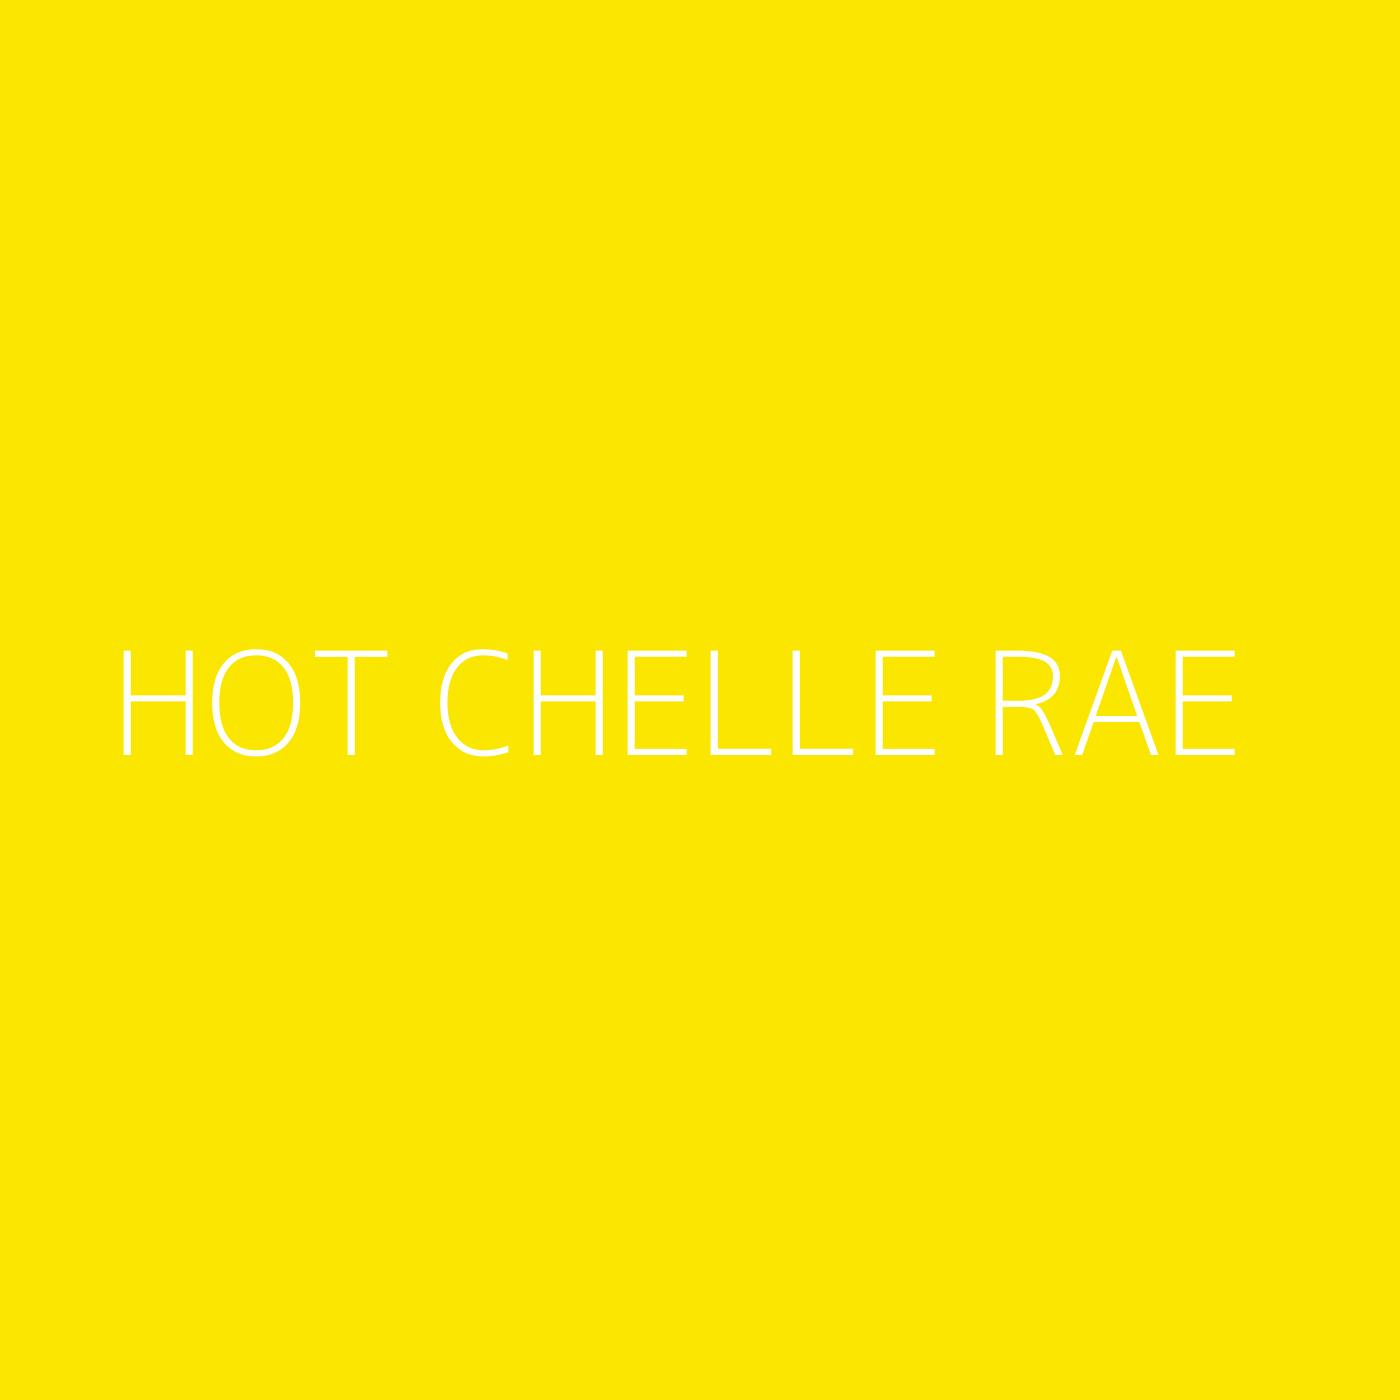 Hot Chelle Rae Playlist Artwork